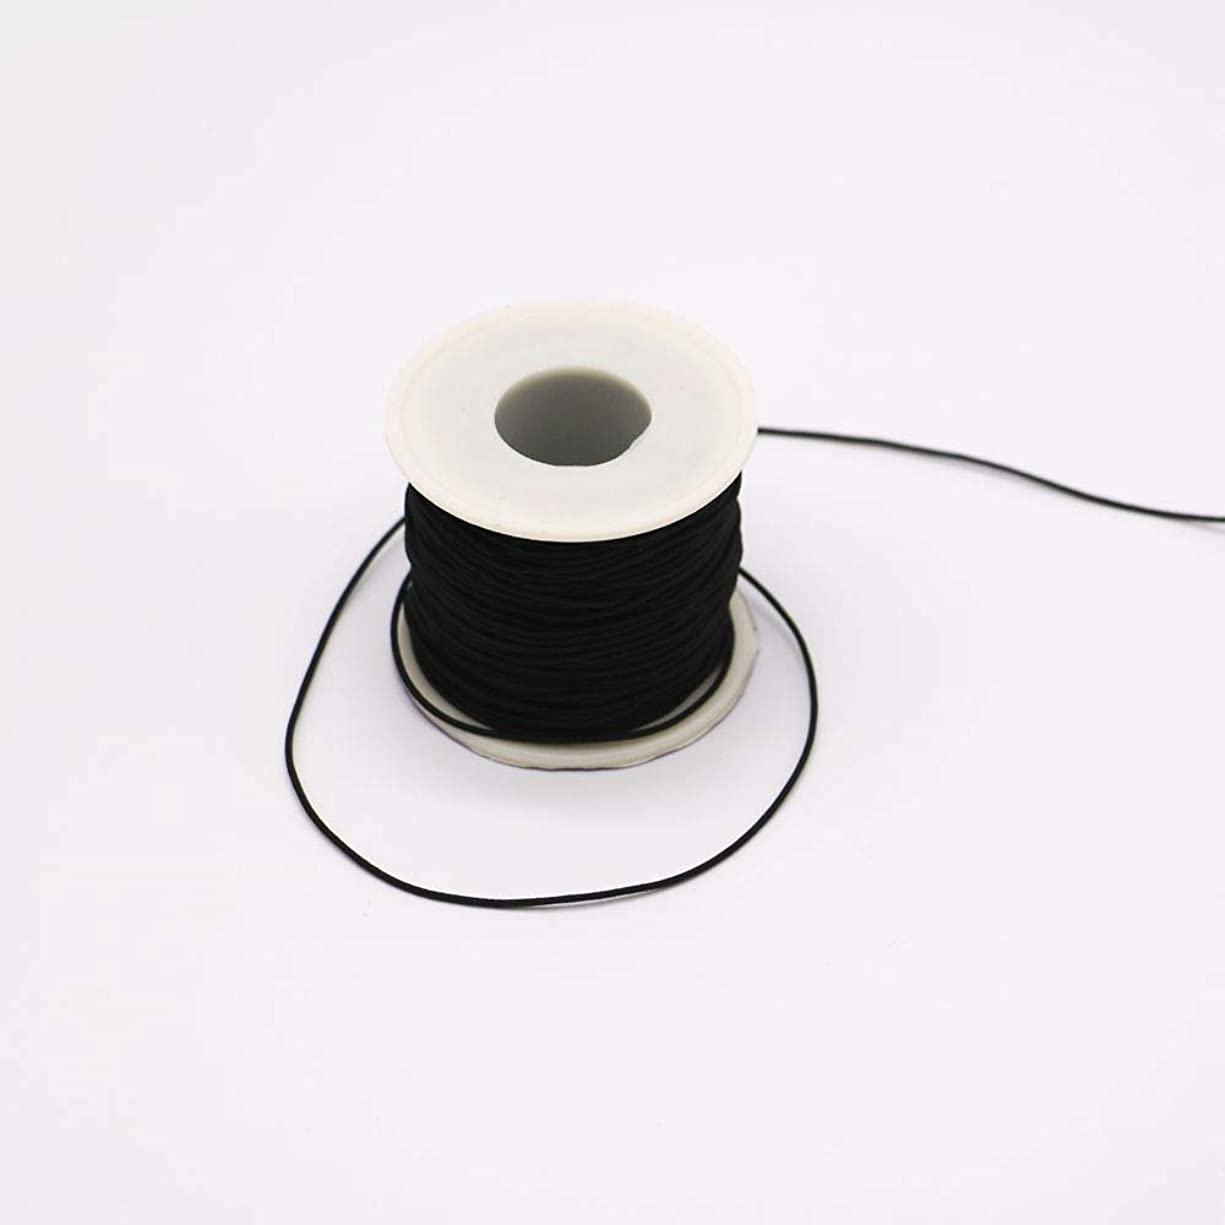 1 mm Elastic Cord Beading Threads Stretch String Fabric Crafting Cords for Jewelry Making (Black, 100 m)